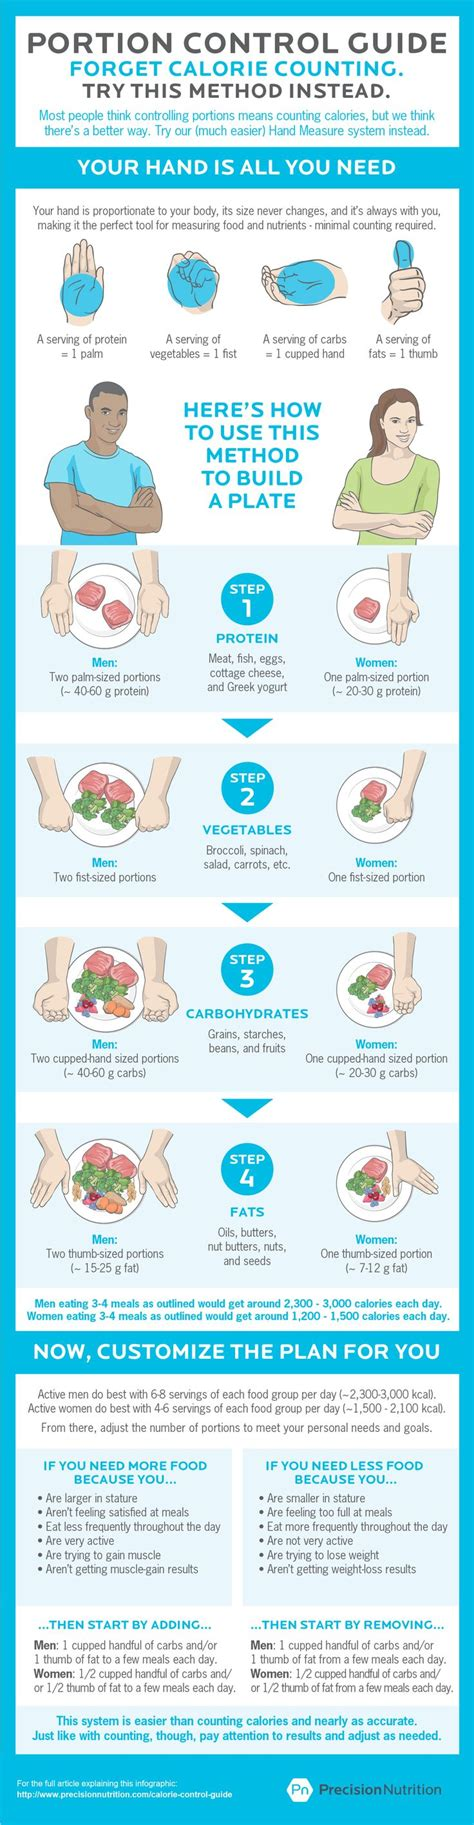 weight loss that control food intake picture 7